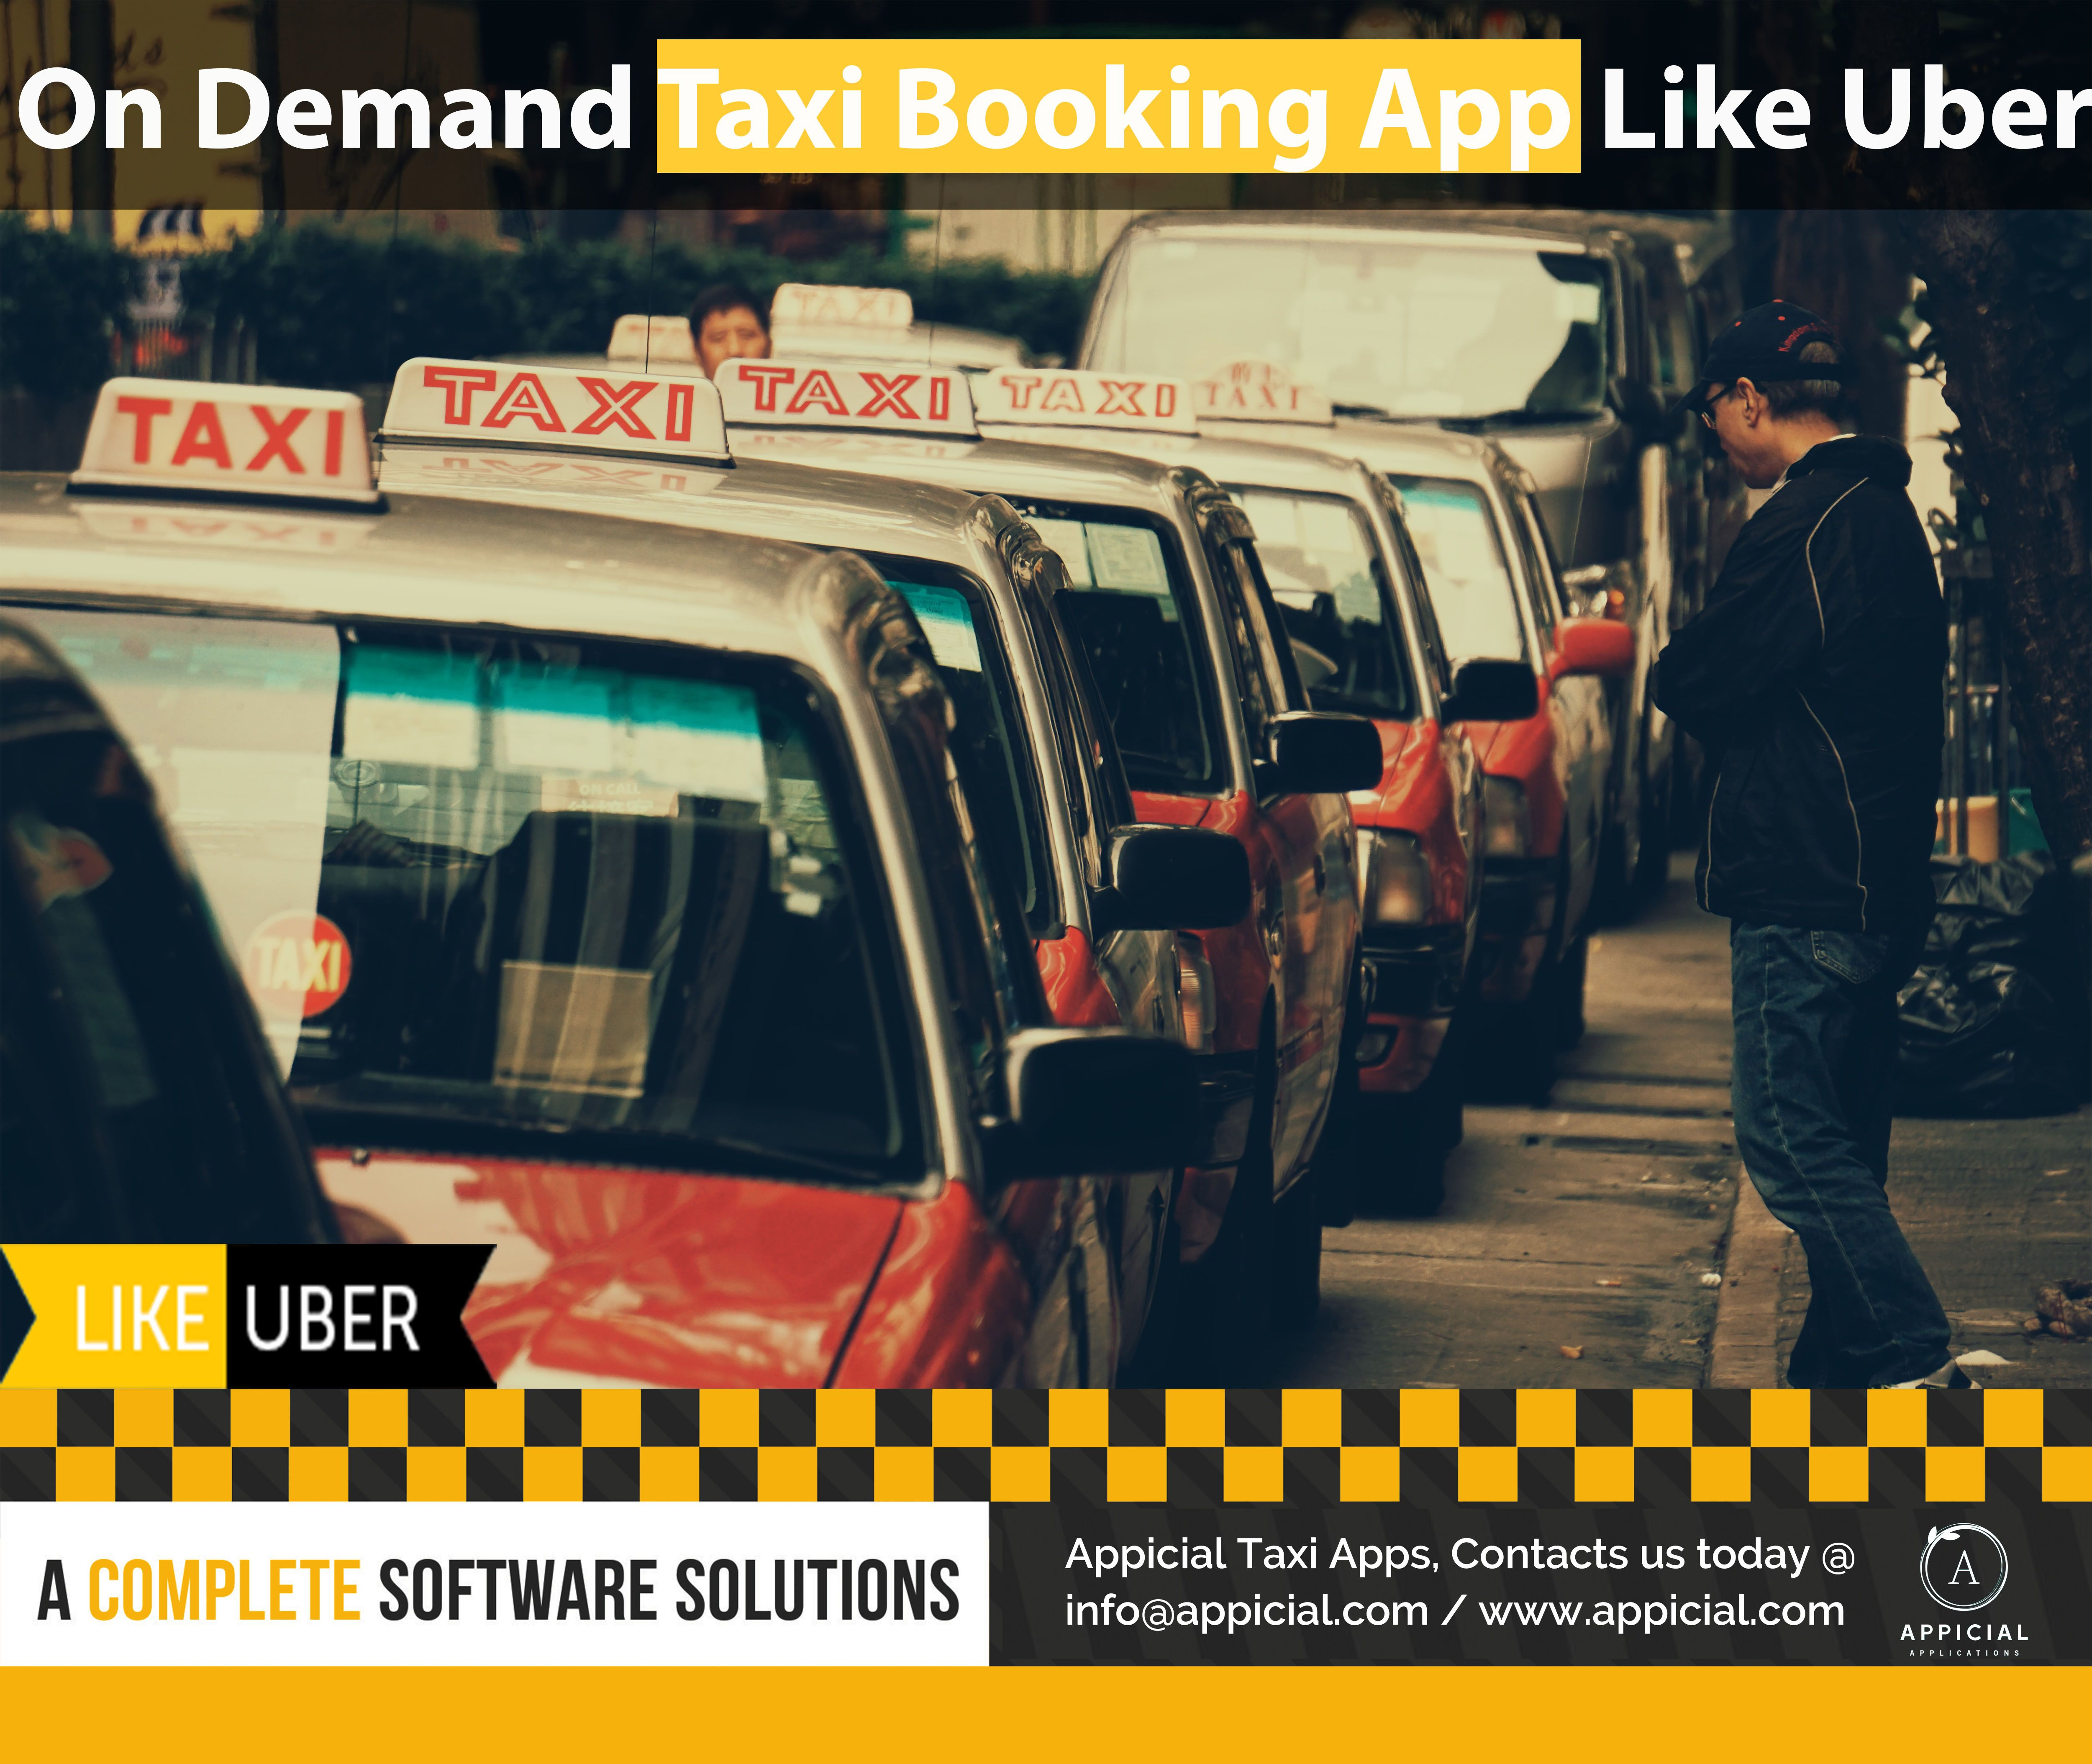 Ondemand taxi app like uberthat is fully white label and